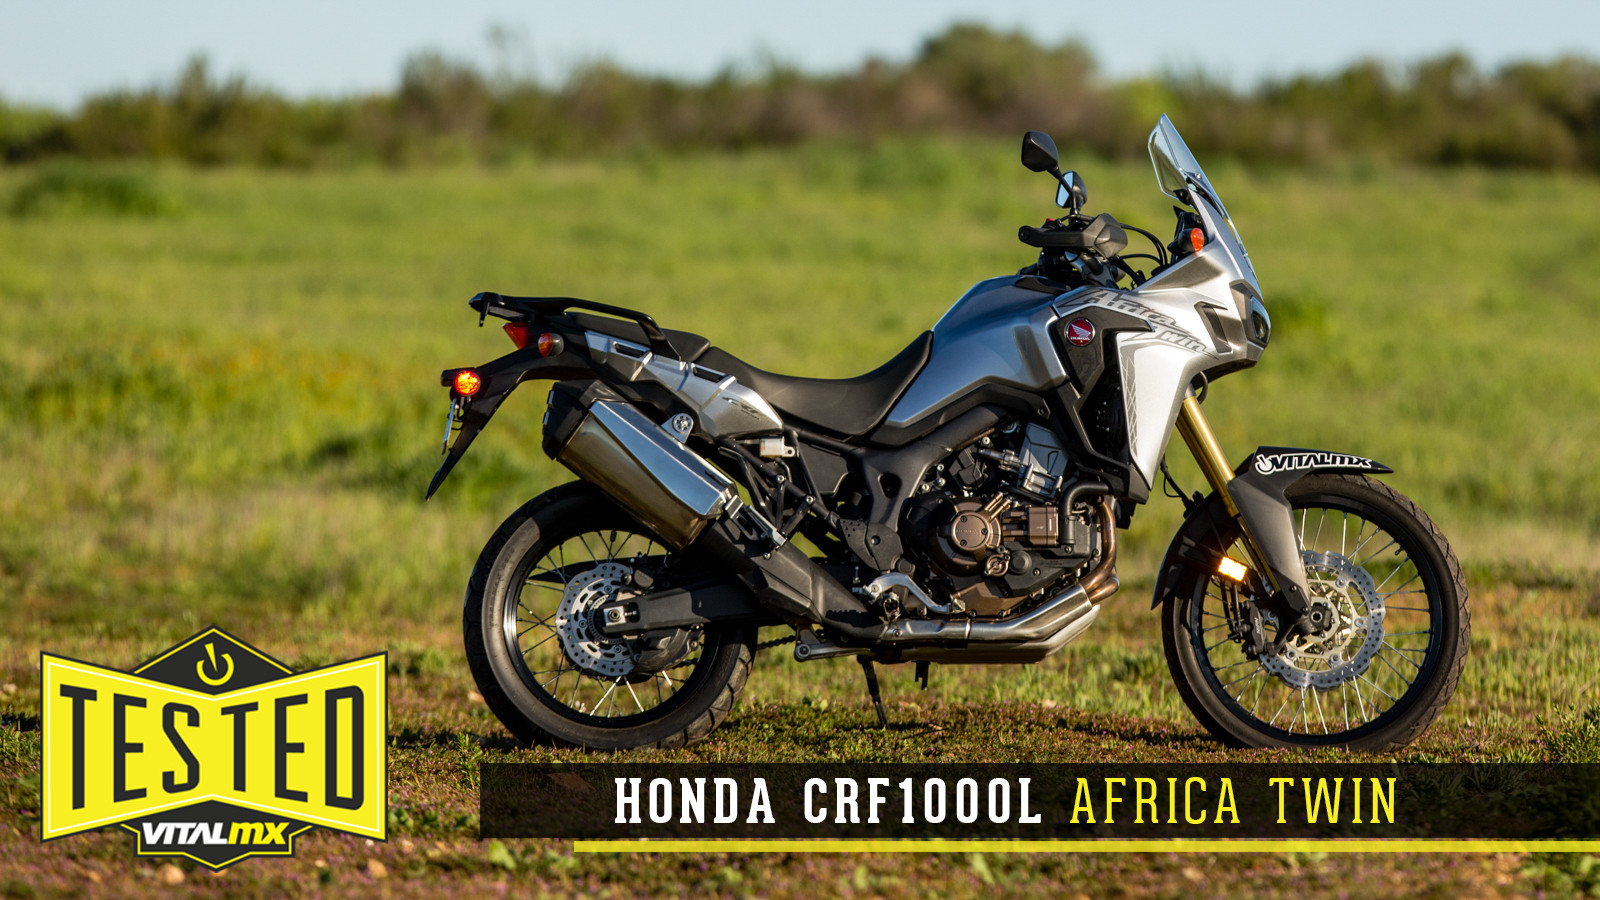 2016 honda crf1000l africa twin reviews comparisons. Black Bedroom Furniture Sets. Home Design Ideas